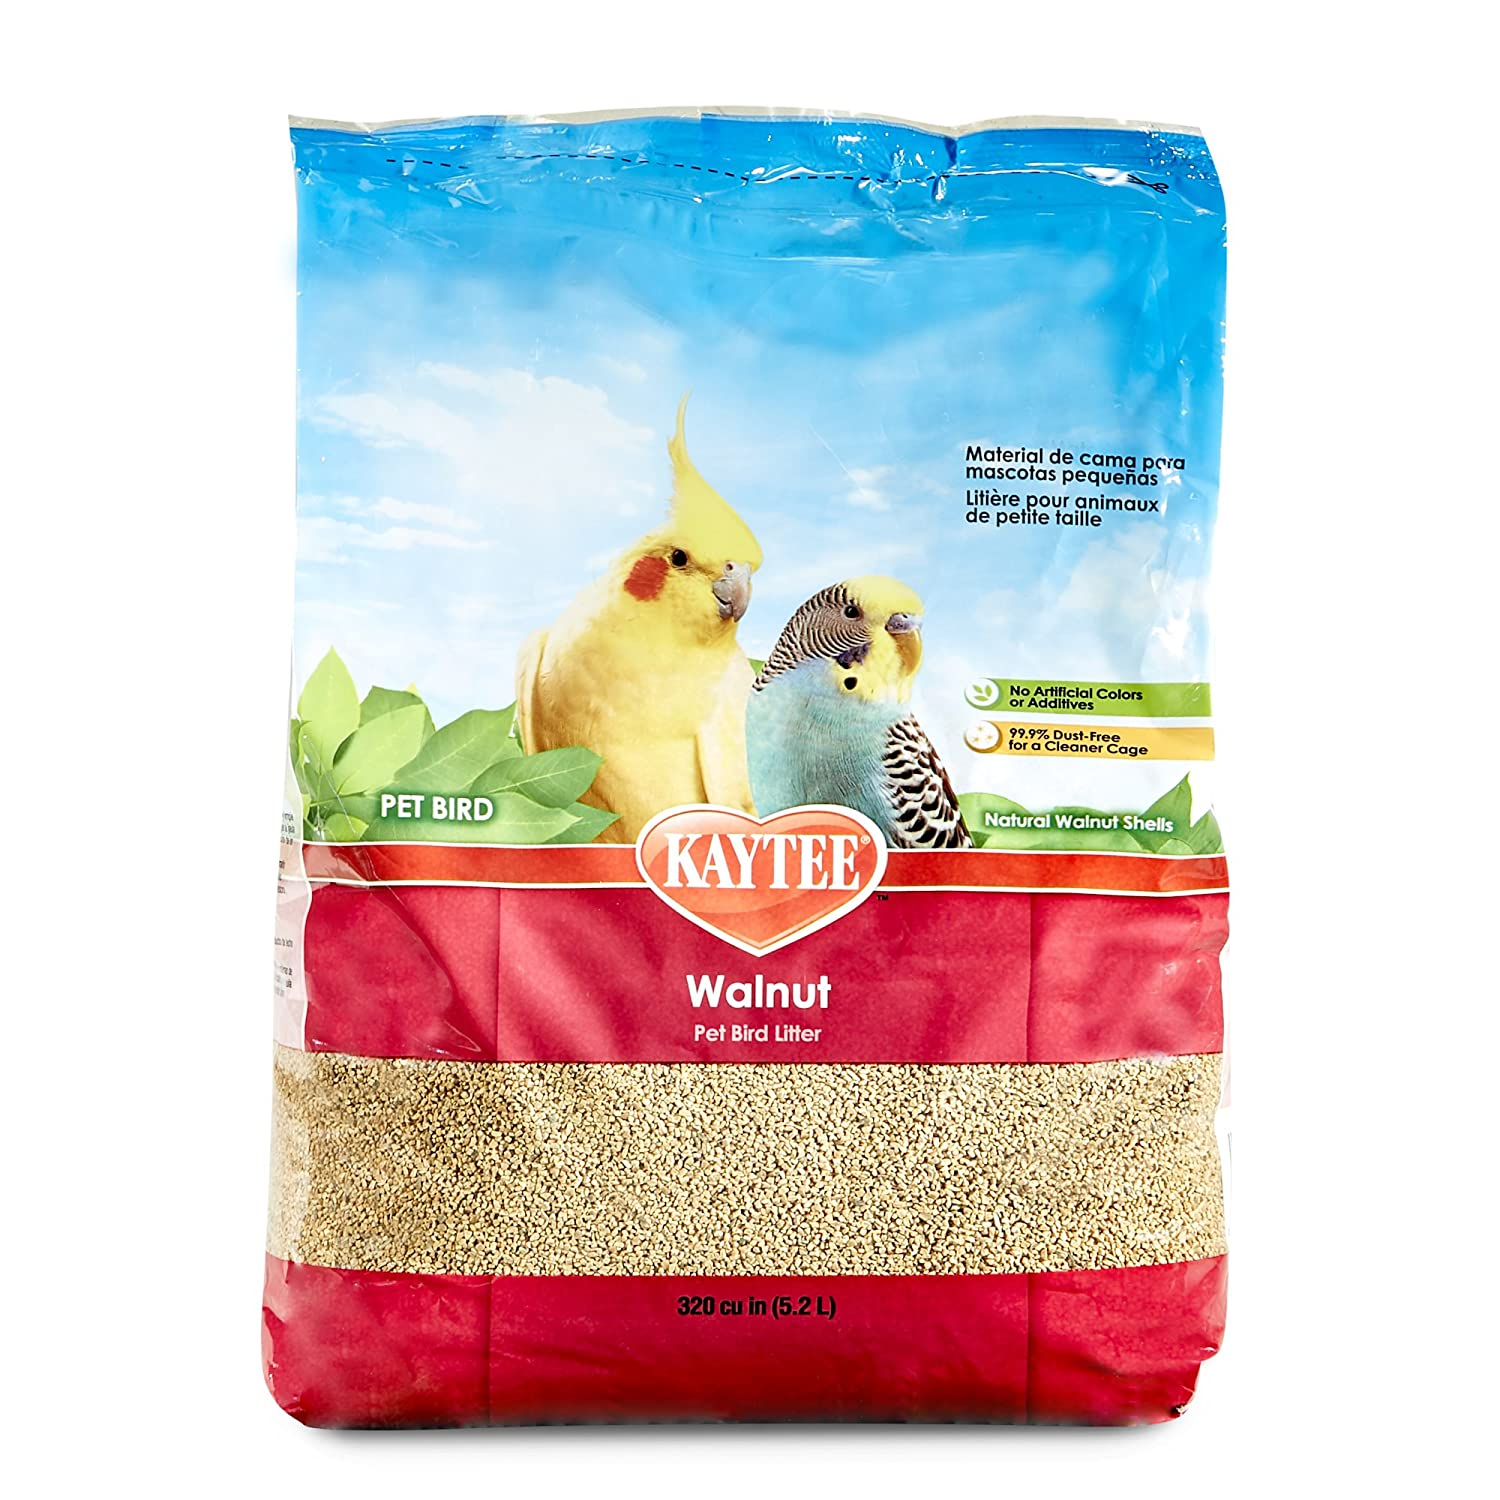 Kaytee Walnut Bedding for Pet Birds